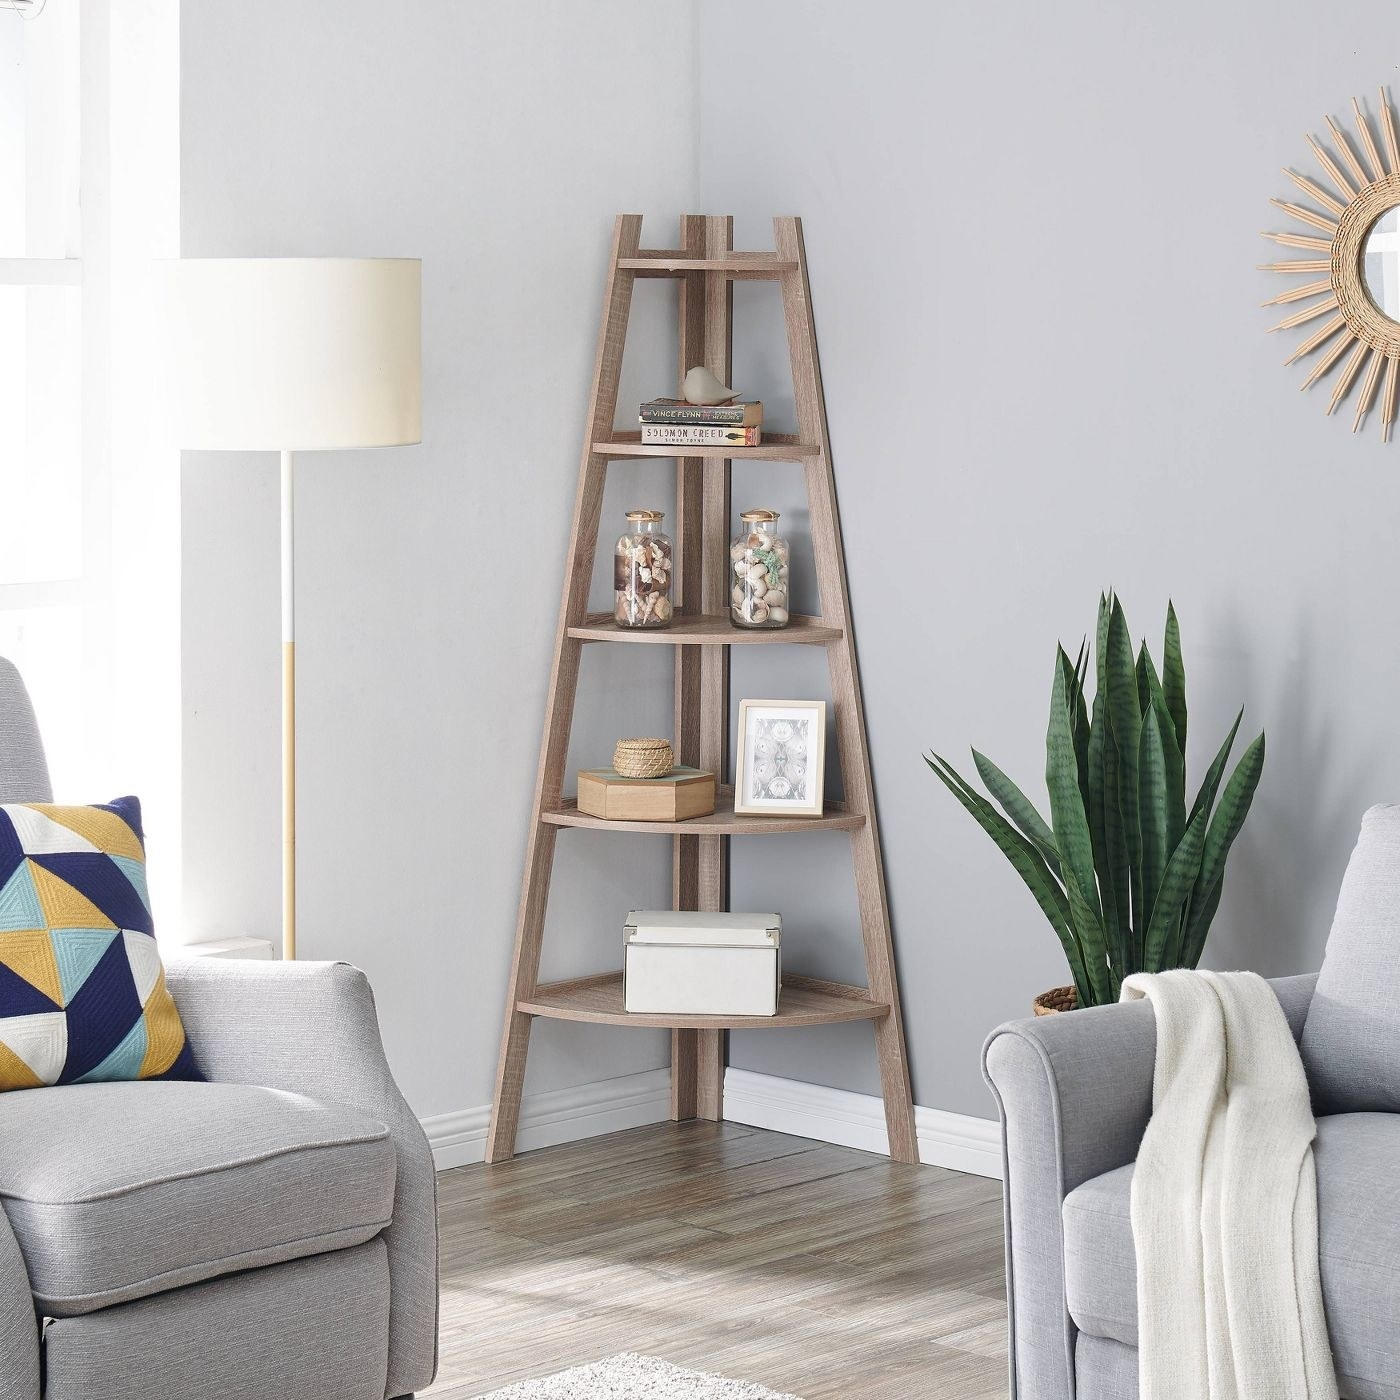 oak colored corner shelf with tripod frame and 5 rounded shelves